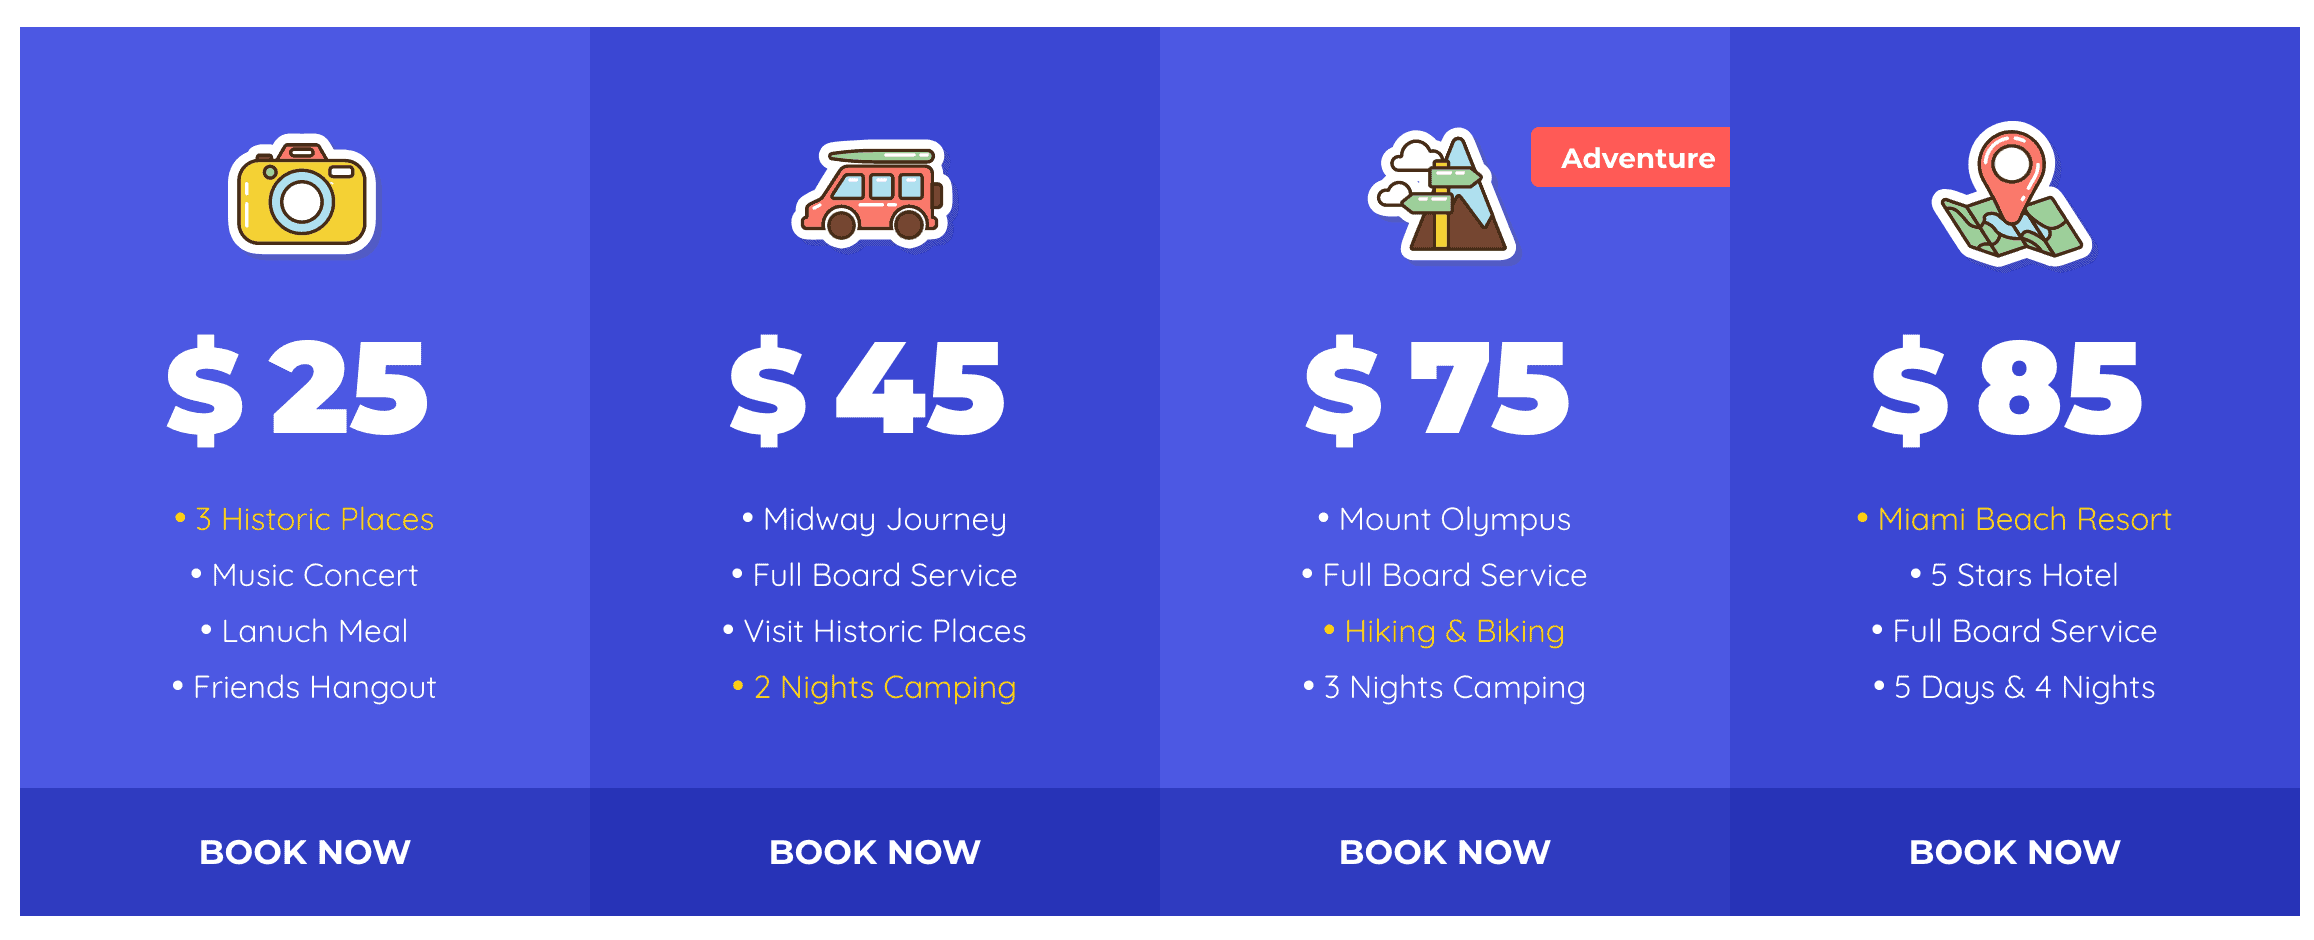 A pricing table using Lottie animations.